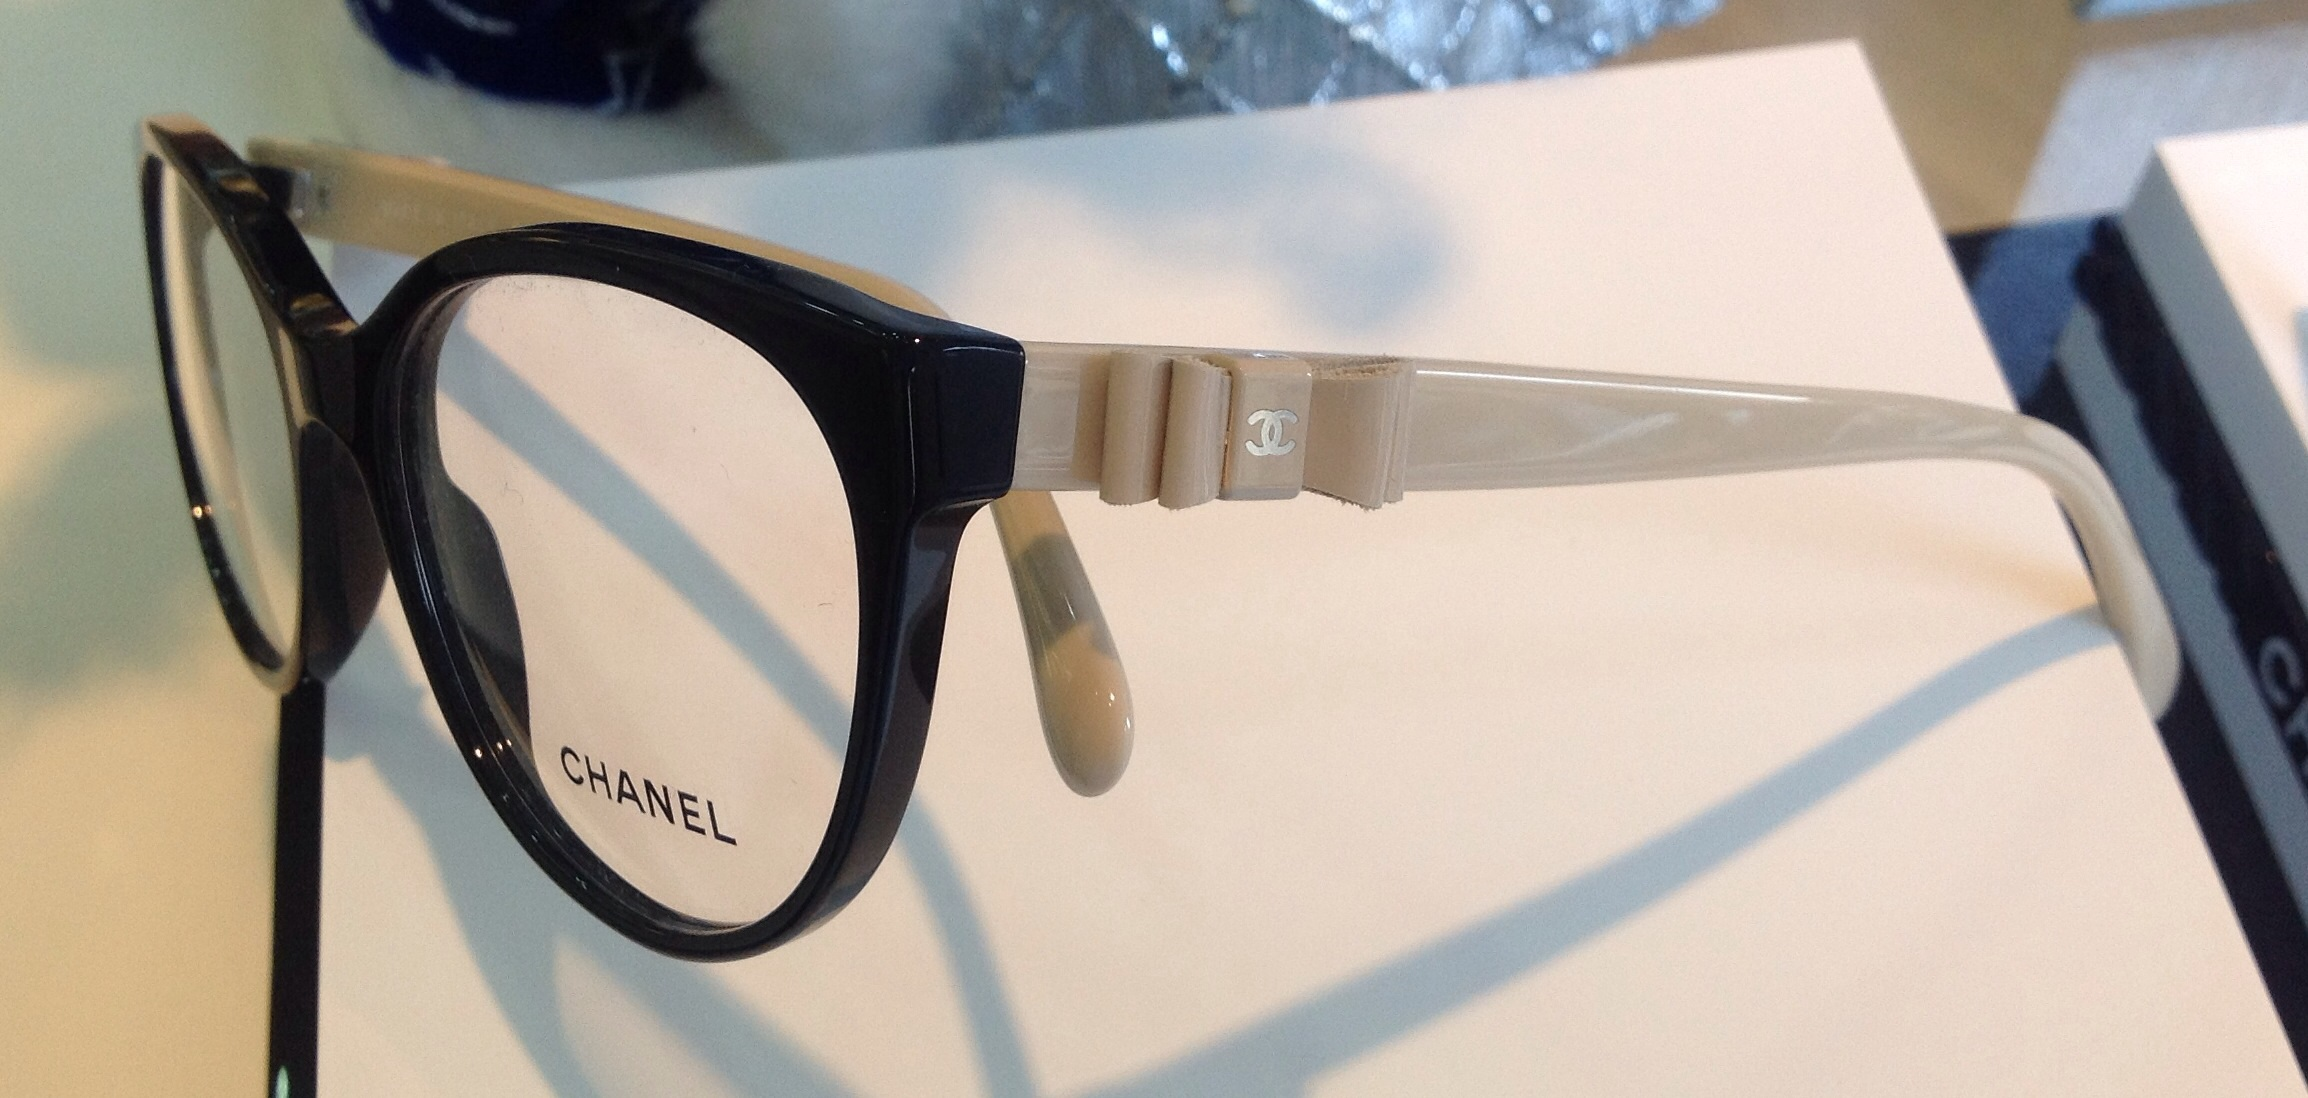 102010f781 CHANEL 2014 El lazo y en piel....mmmmmm! superchic! | Blog Optica ...